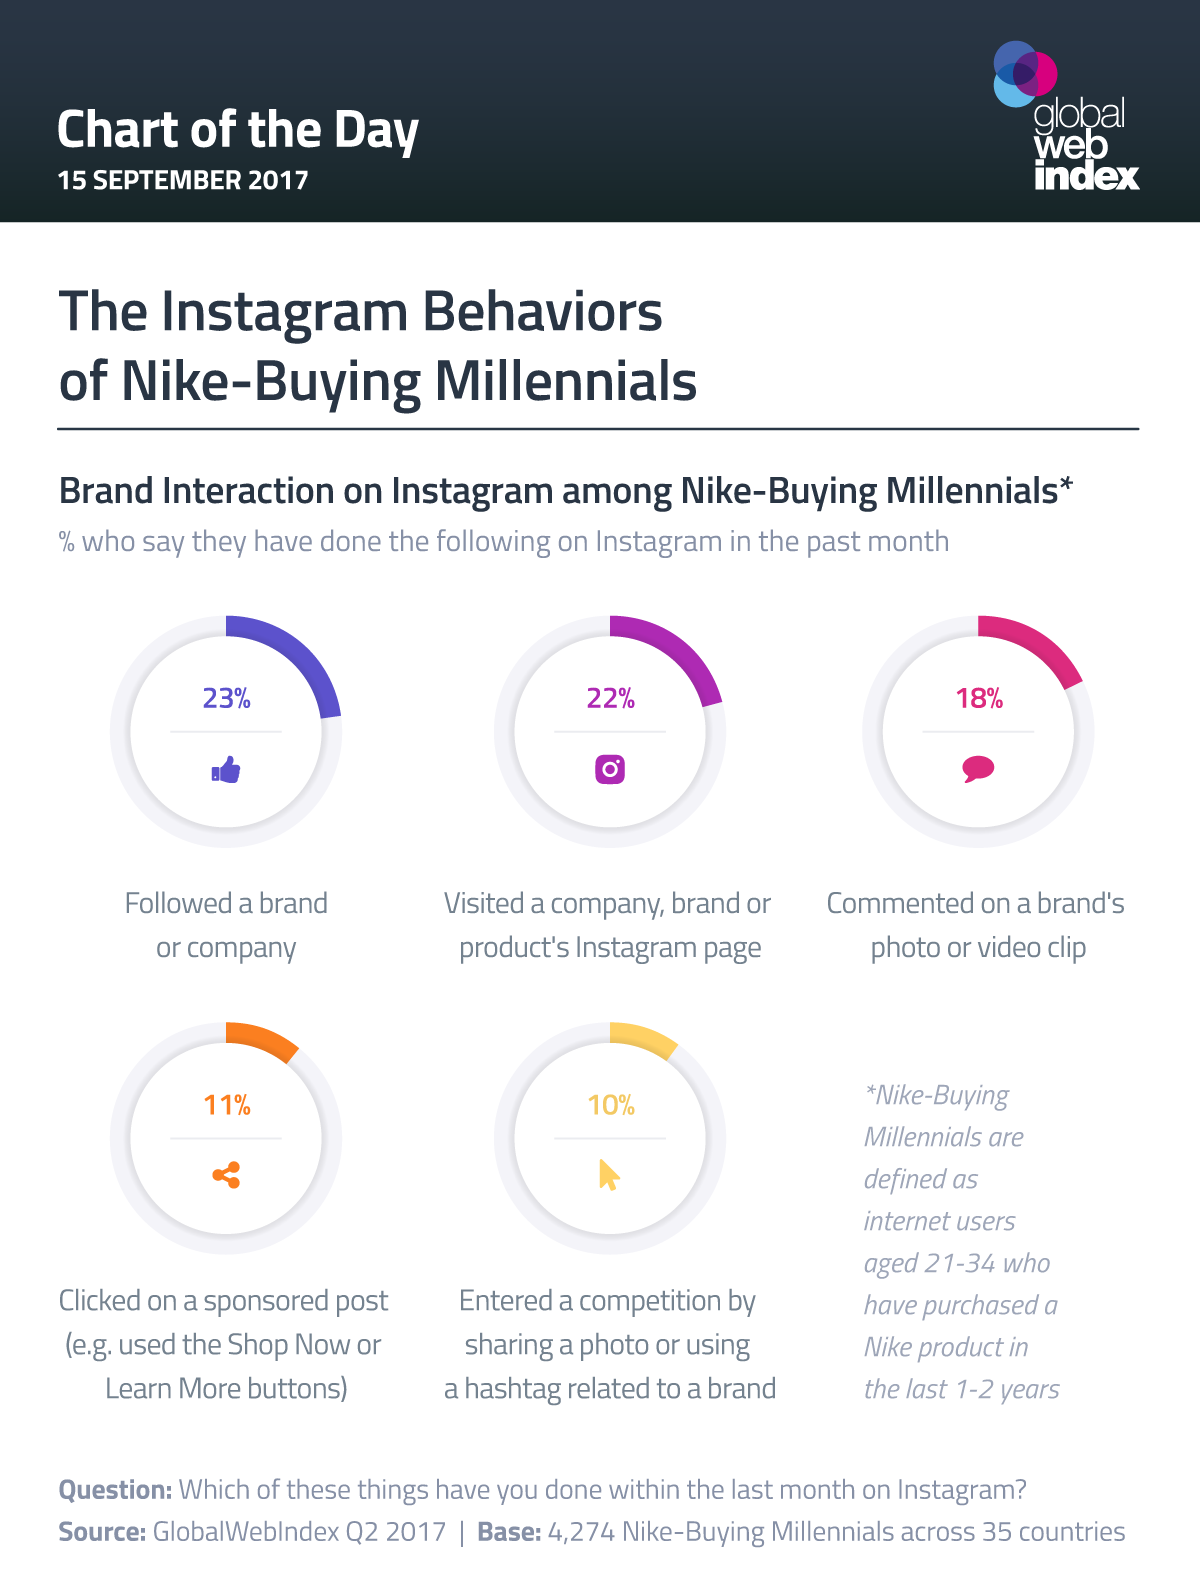 4 in 10 Instagrammers are Nike-Buying Millennials